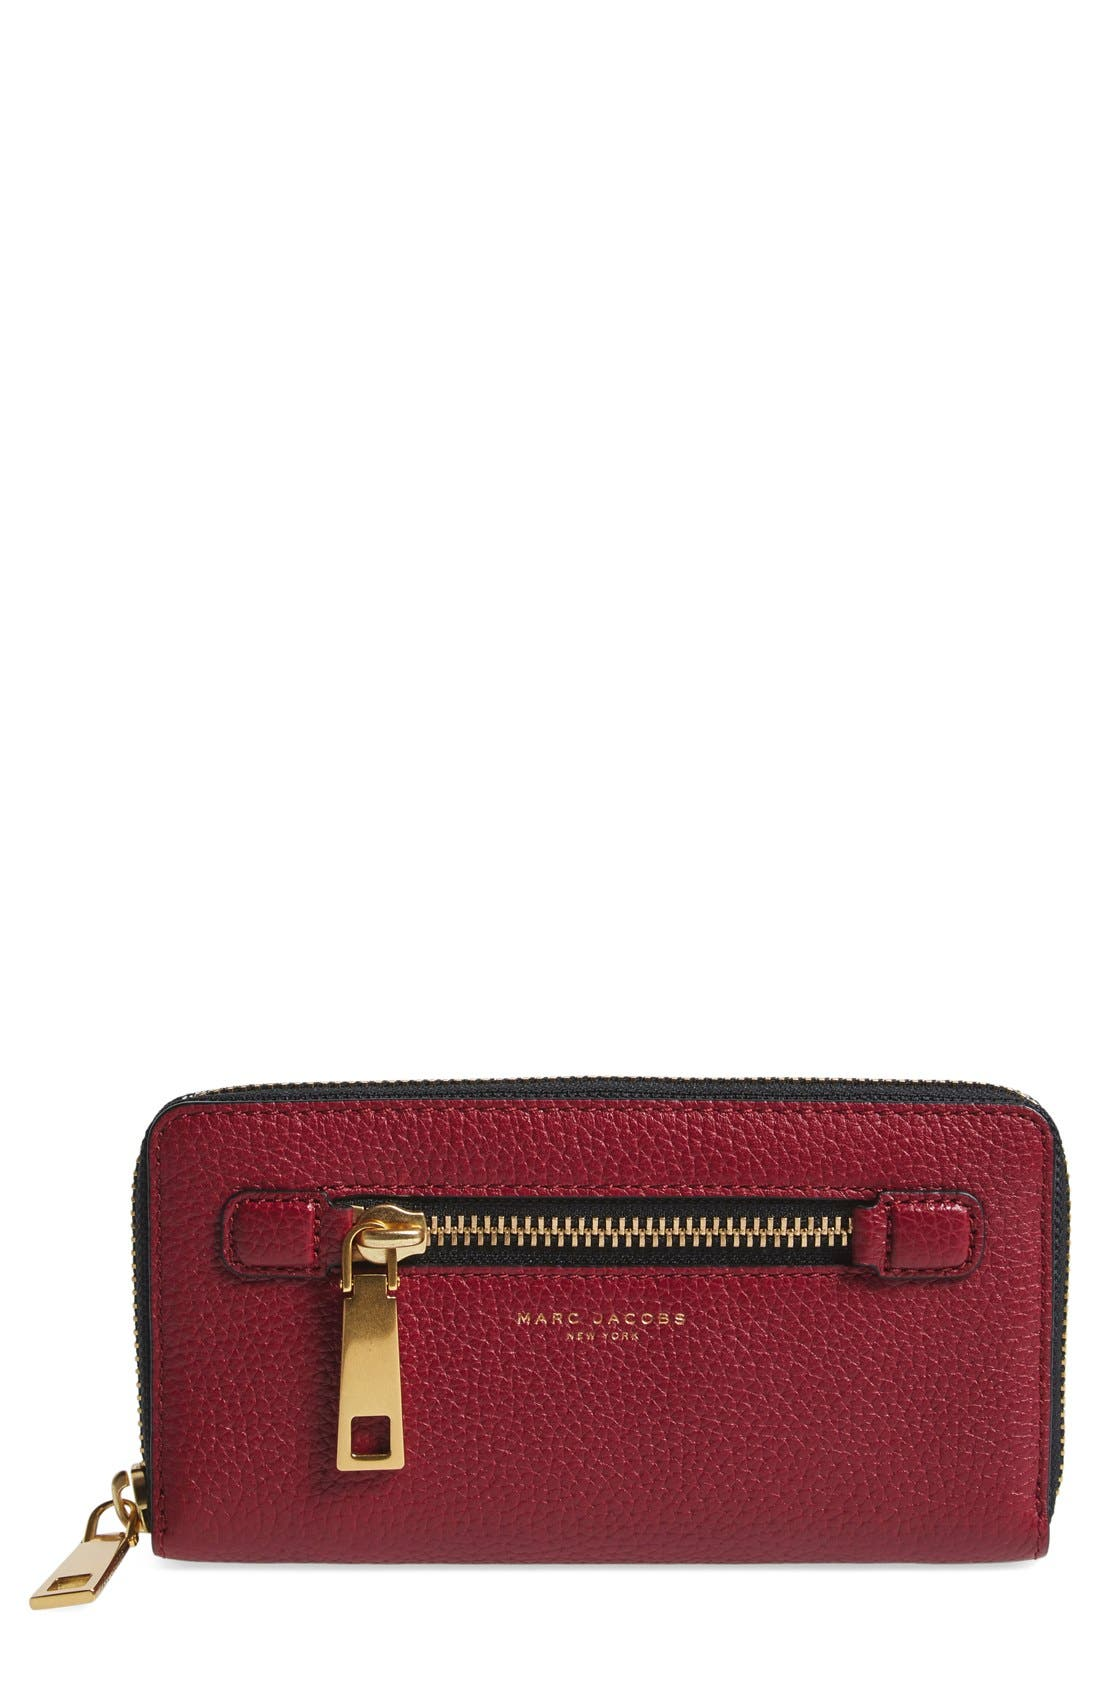 Main Image - MARC JACOBS 'Gotham' Leather Continental Wallet